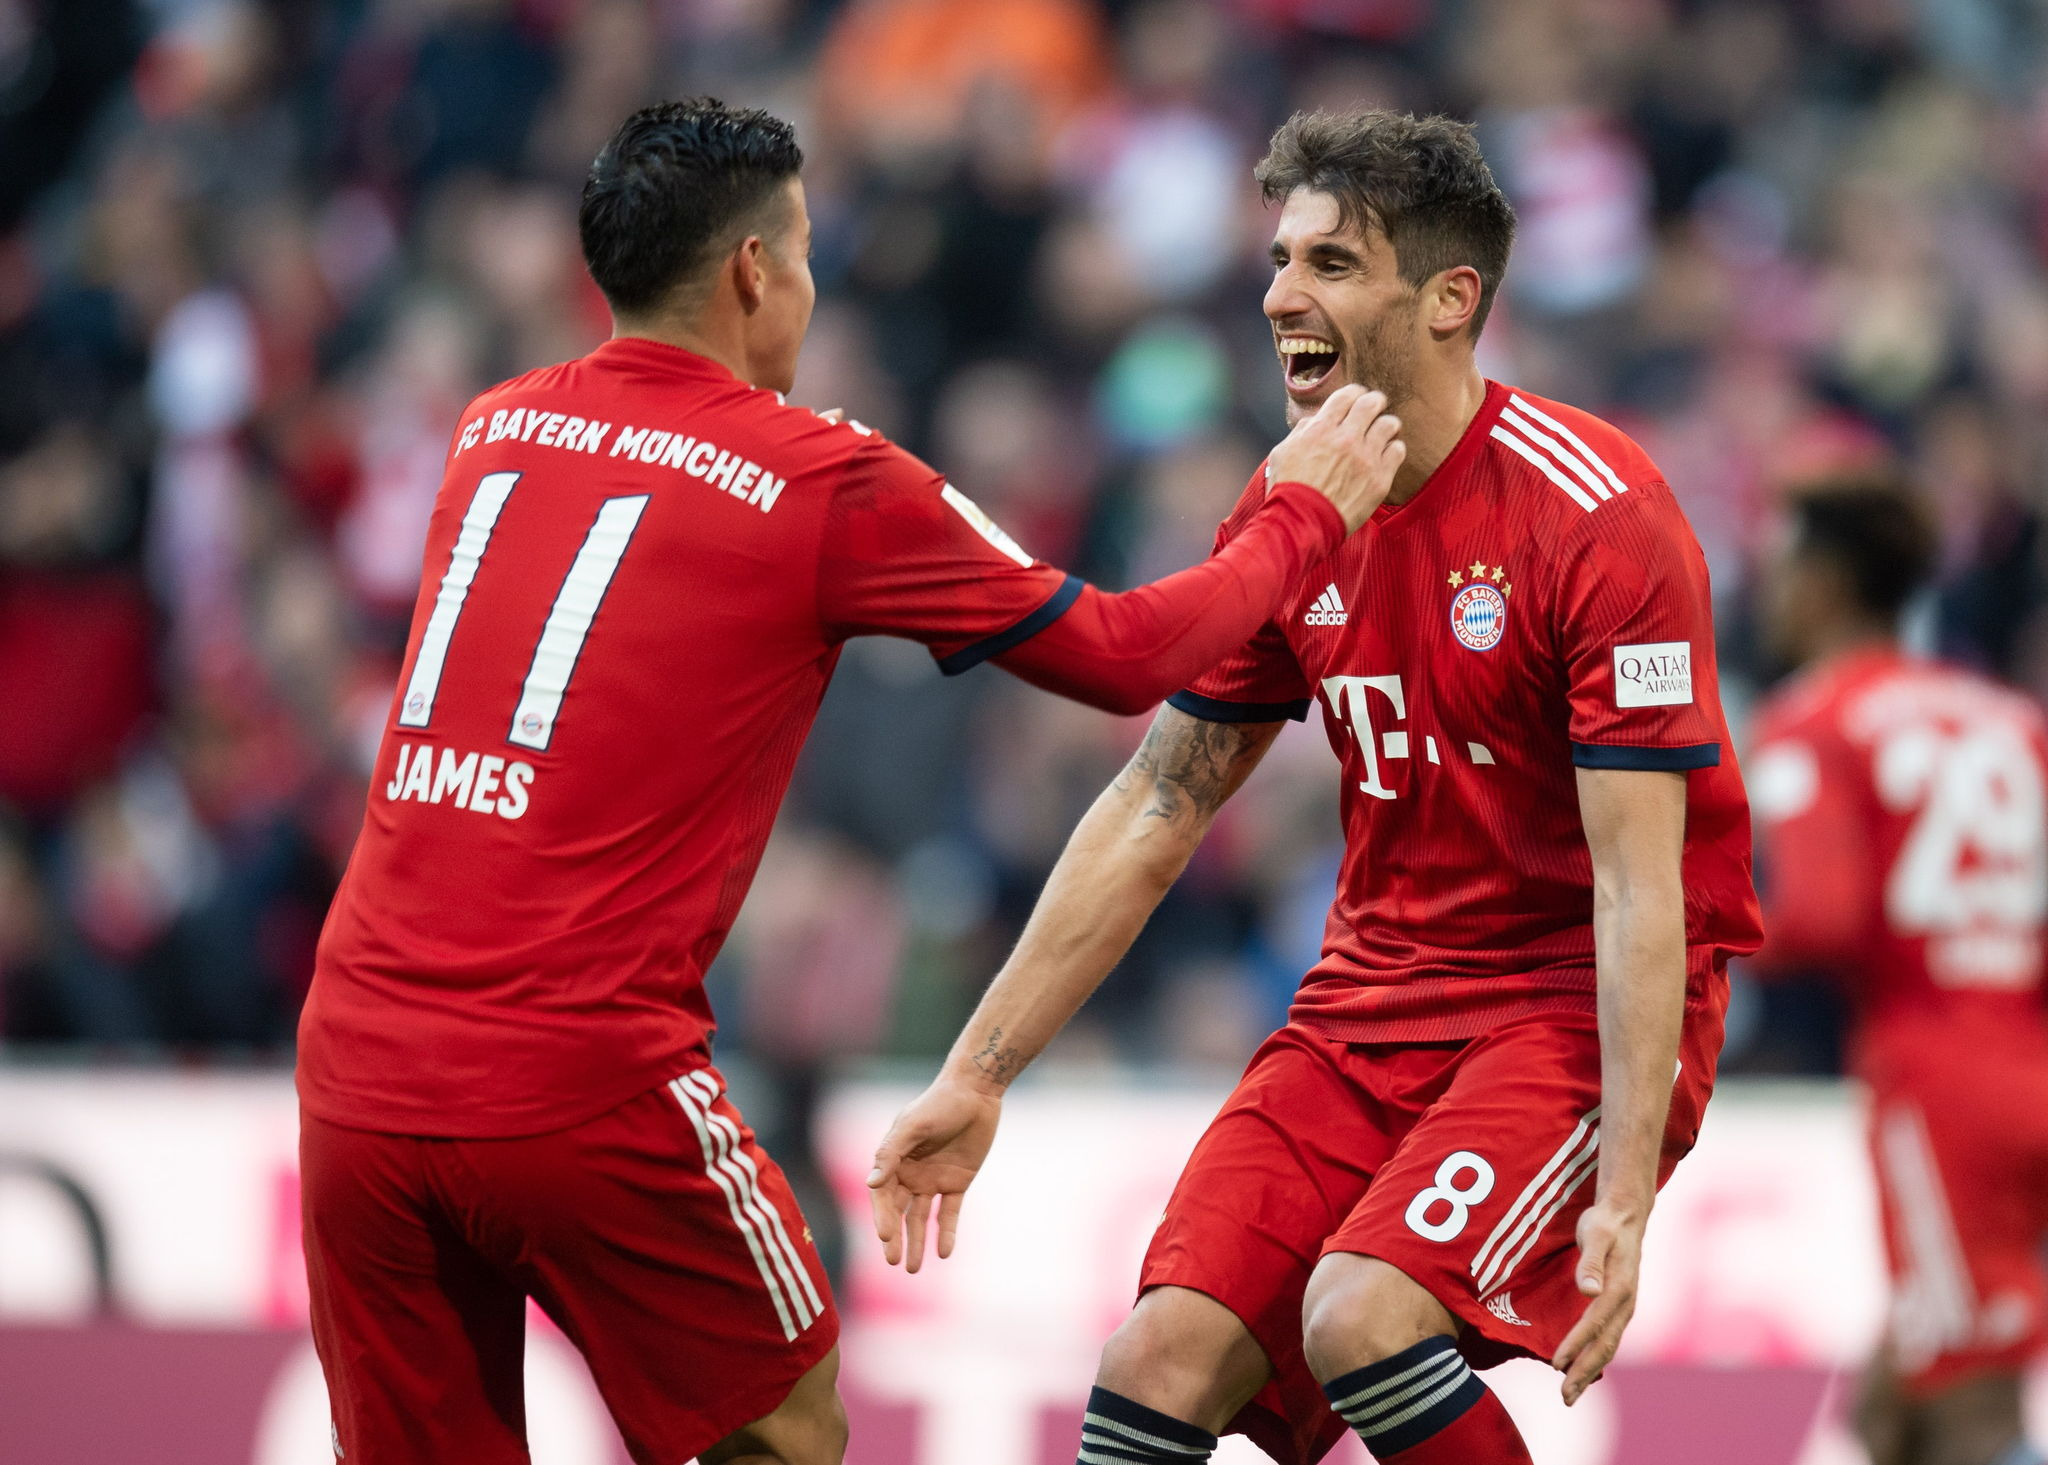 Munich (Germany), 23/02/2019.- Javi Martinez of Munich (R) celebrates with <HIT>James</HIT> Rodriguez of Munich after scoring the 0-1 goal during the German Bundesliga soccer match between FC Bayern Munich and Hertha BSC Berlin in Munich, Germany, 23 February 2019. (Alemania) EFE/EPA/DANIEL KOPATSCH CONDITIONS - ATTENTION: The DFL regulations prohibit any use of photographs as image sequences and/or quasi-video